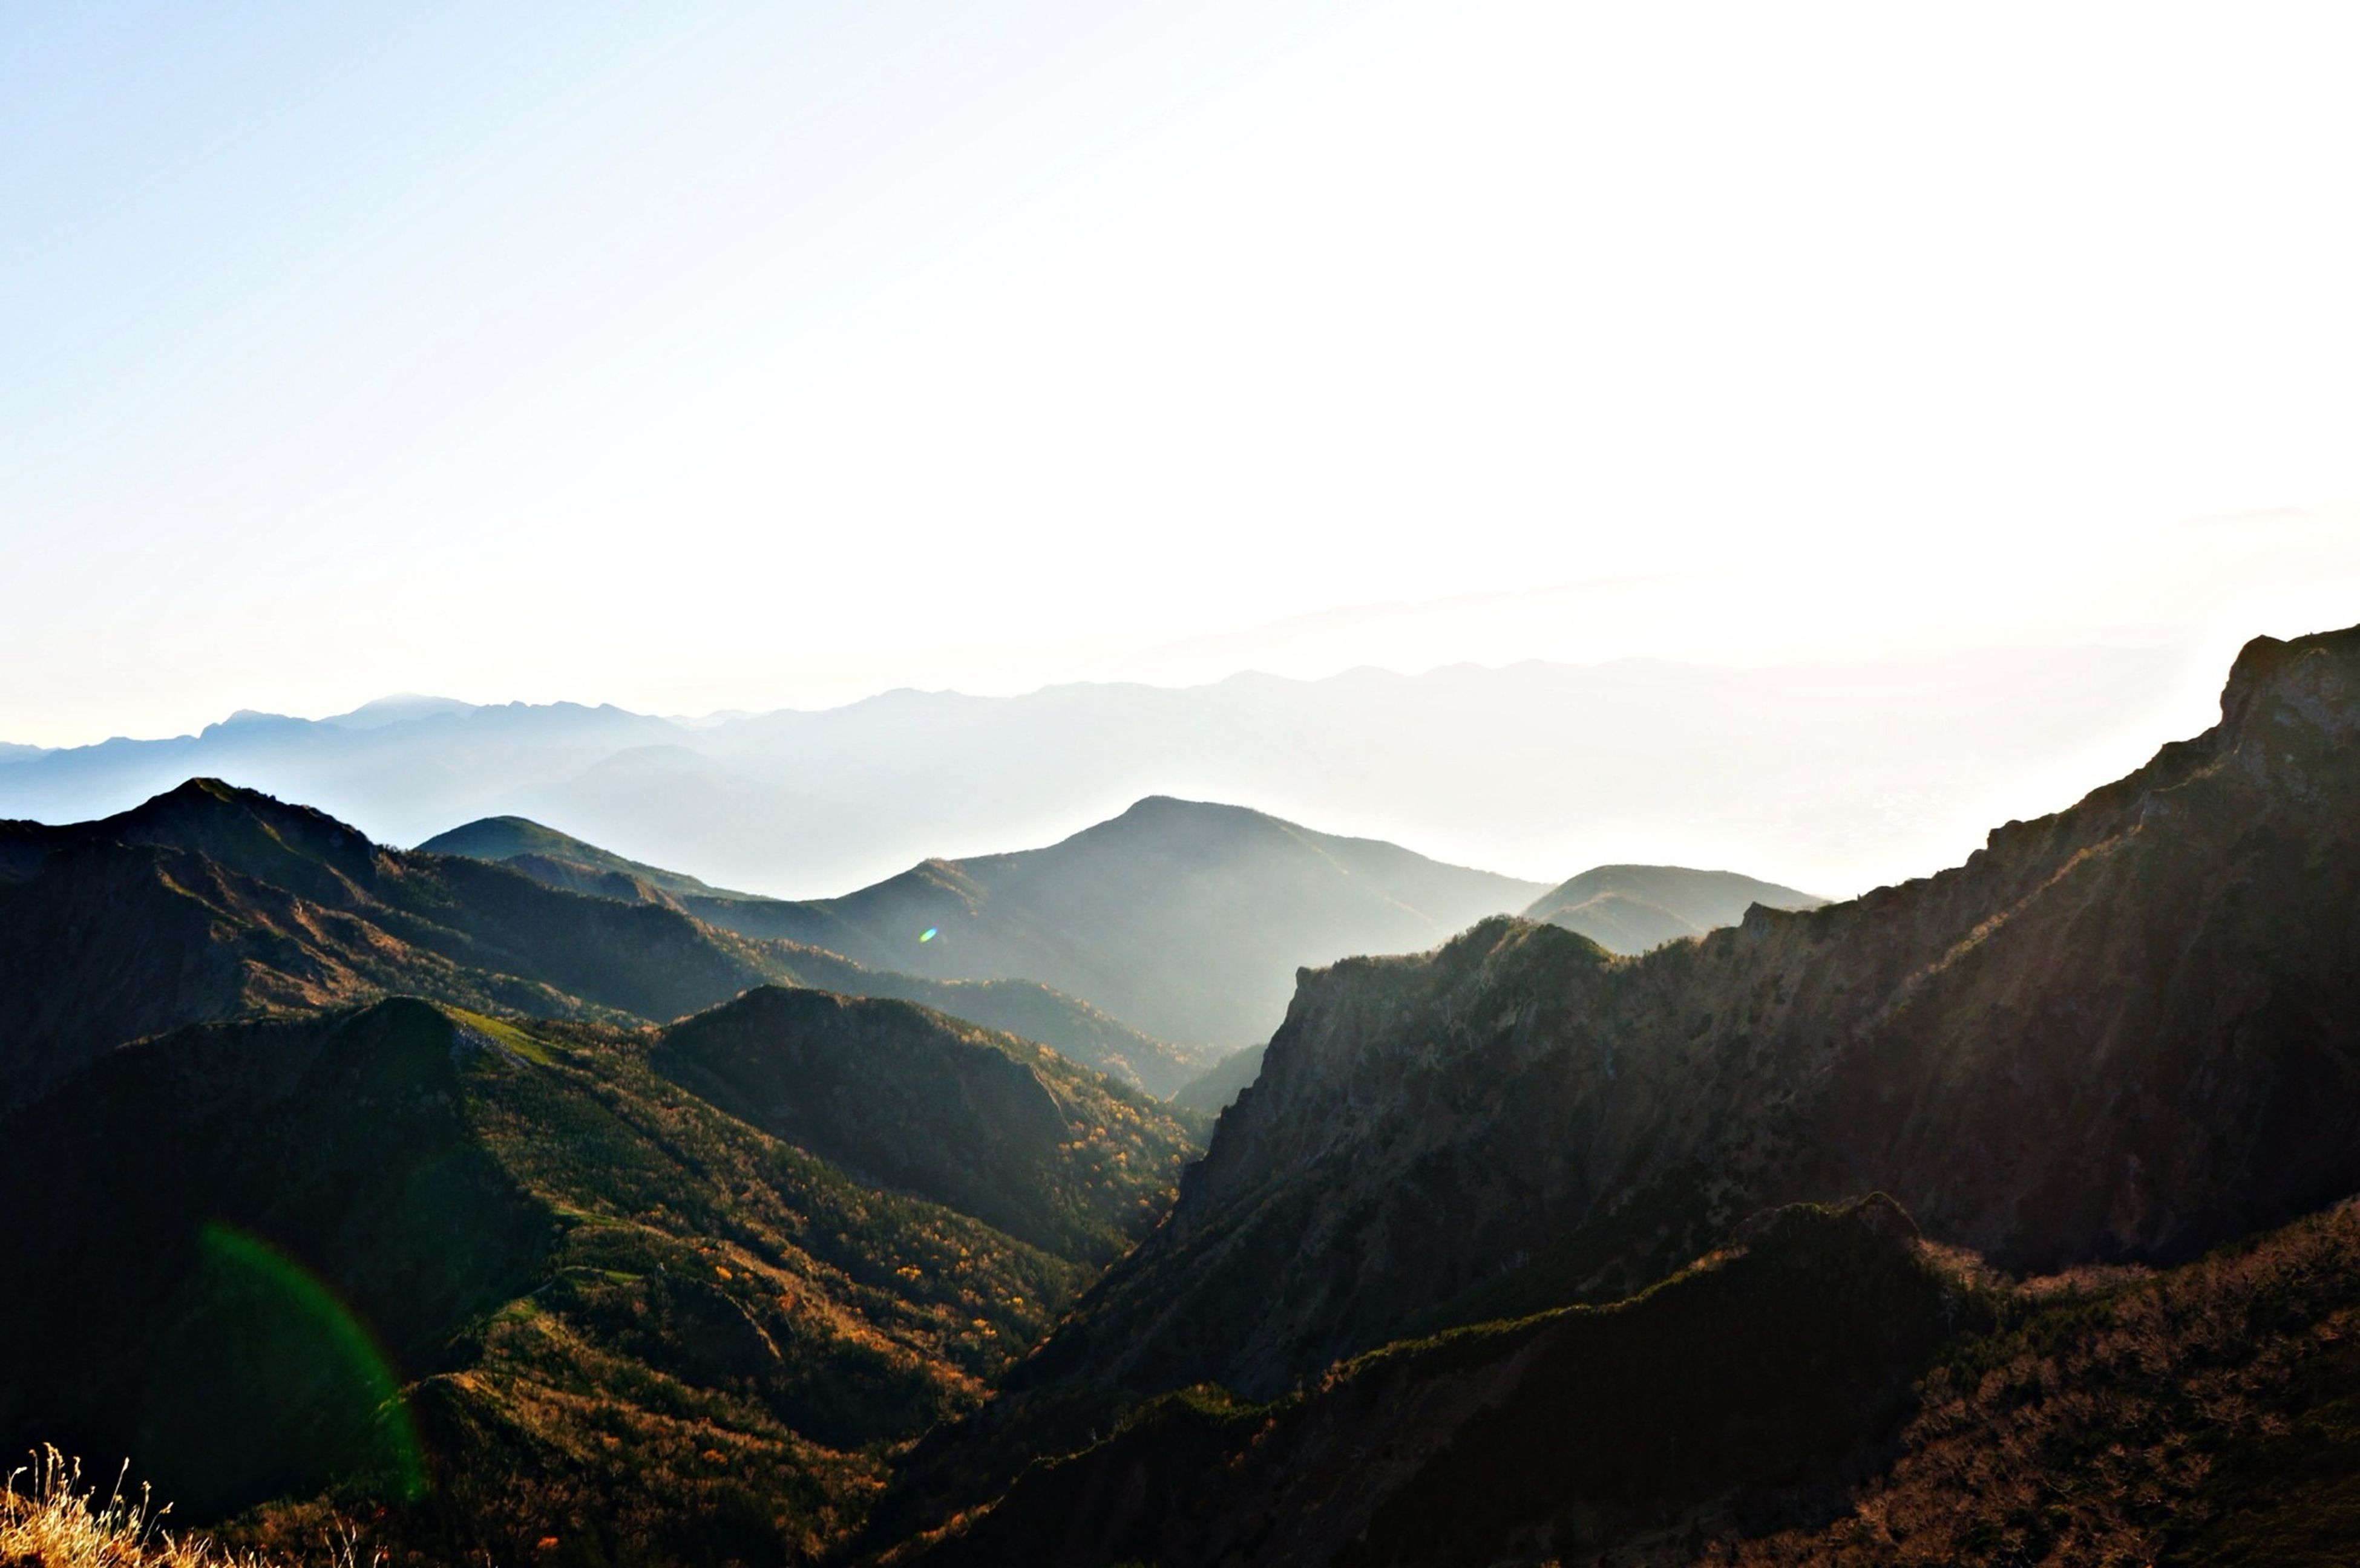 mountain, mountain range, tranquil scene, scenics, tranquility, beauty in nature, landscape, clear sky, copy space, nature, non-urban scene, idyllic, physical geography, geology, sky, remote, outdoors, hill, no people